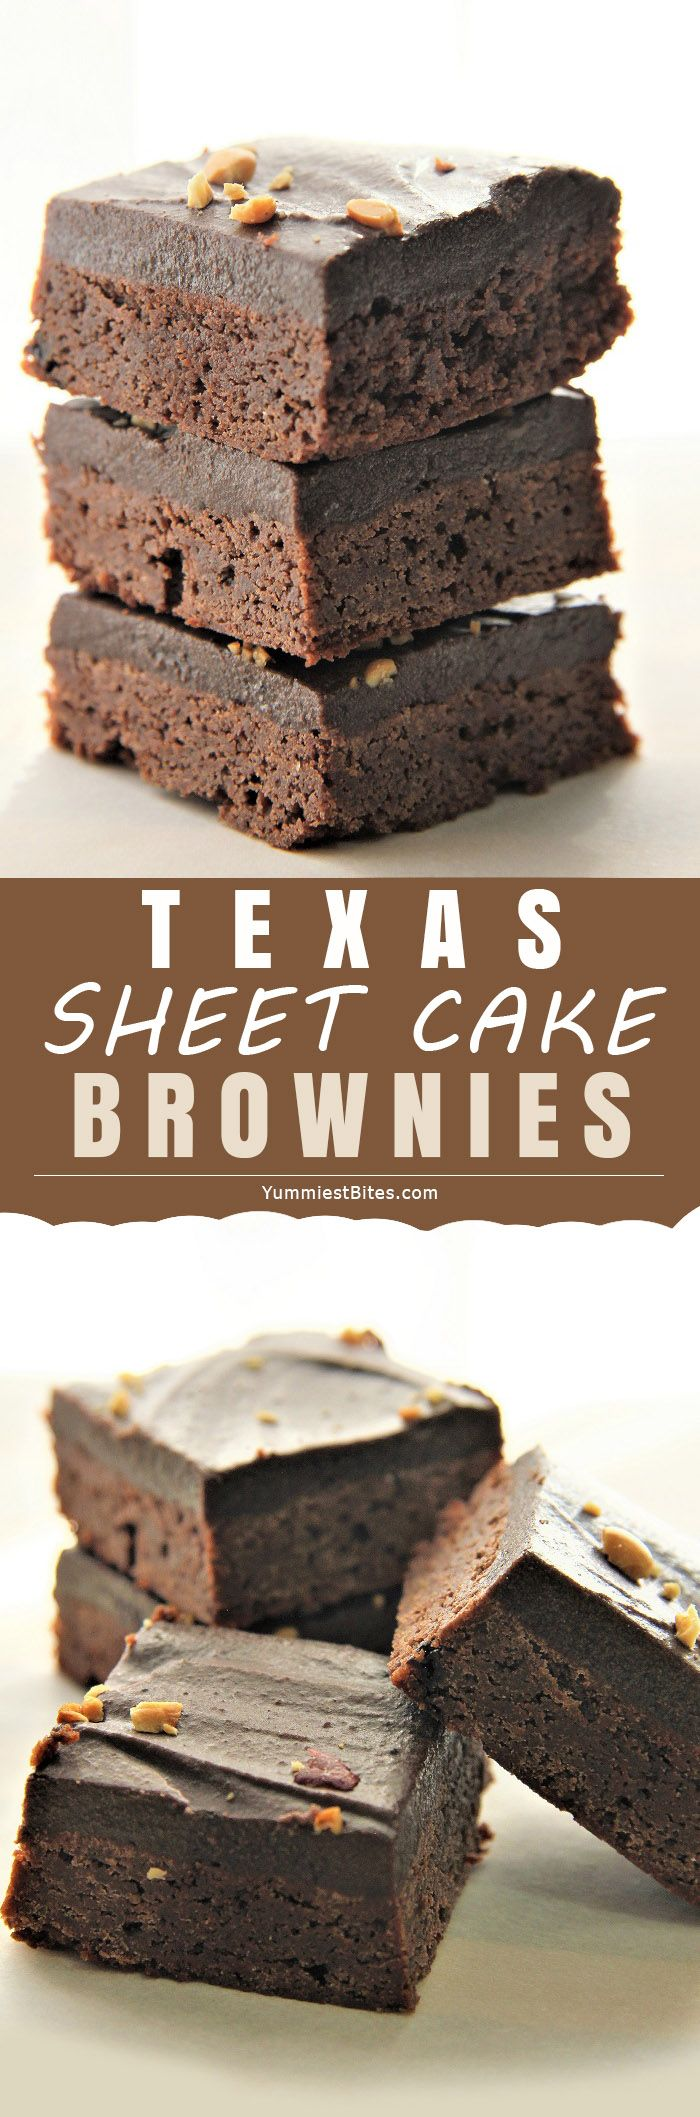 Great sheet cake recipes